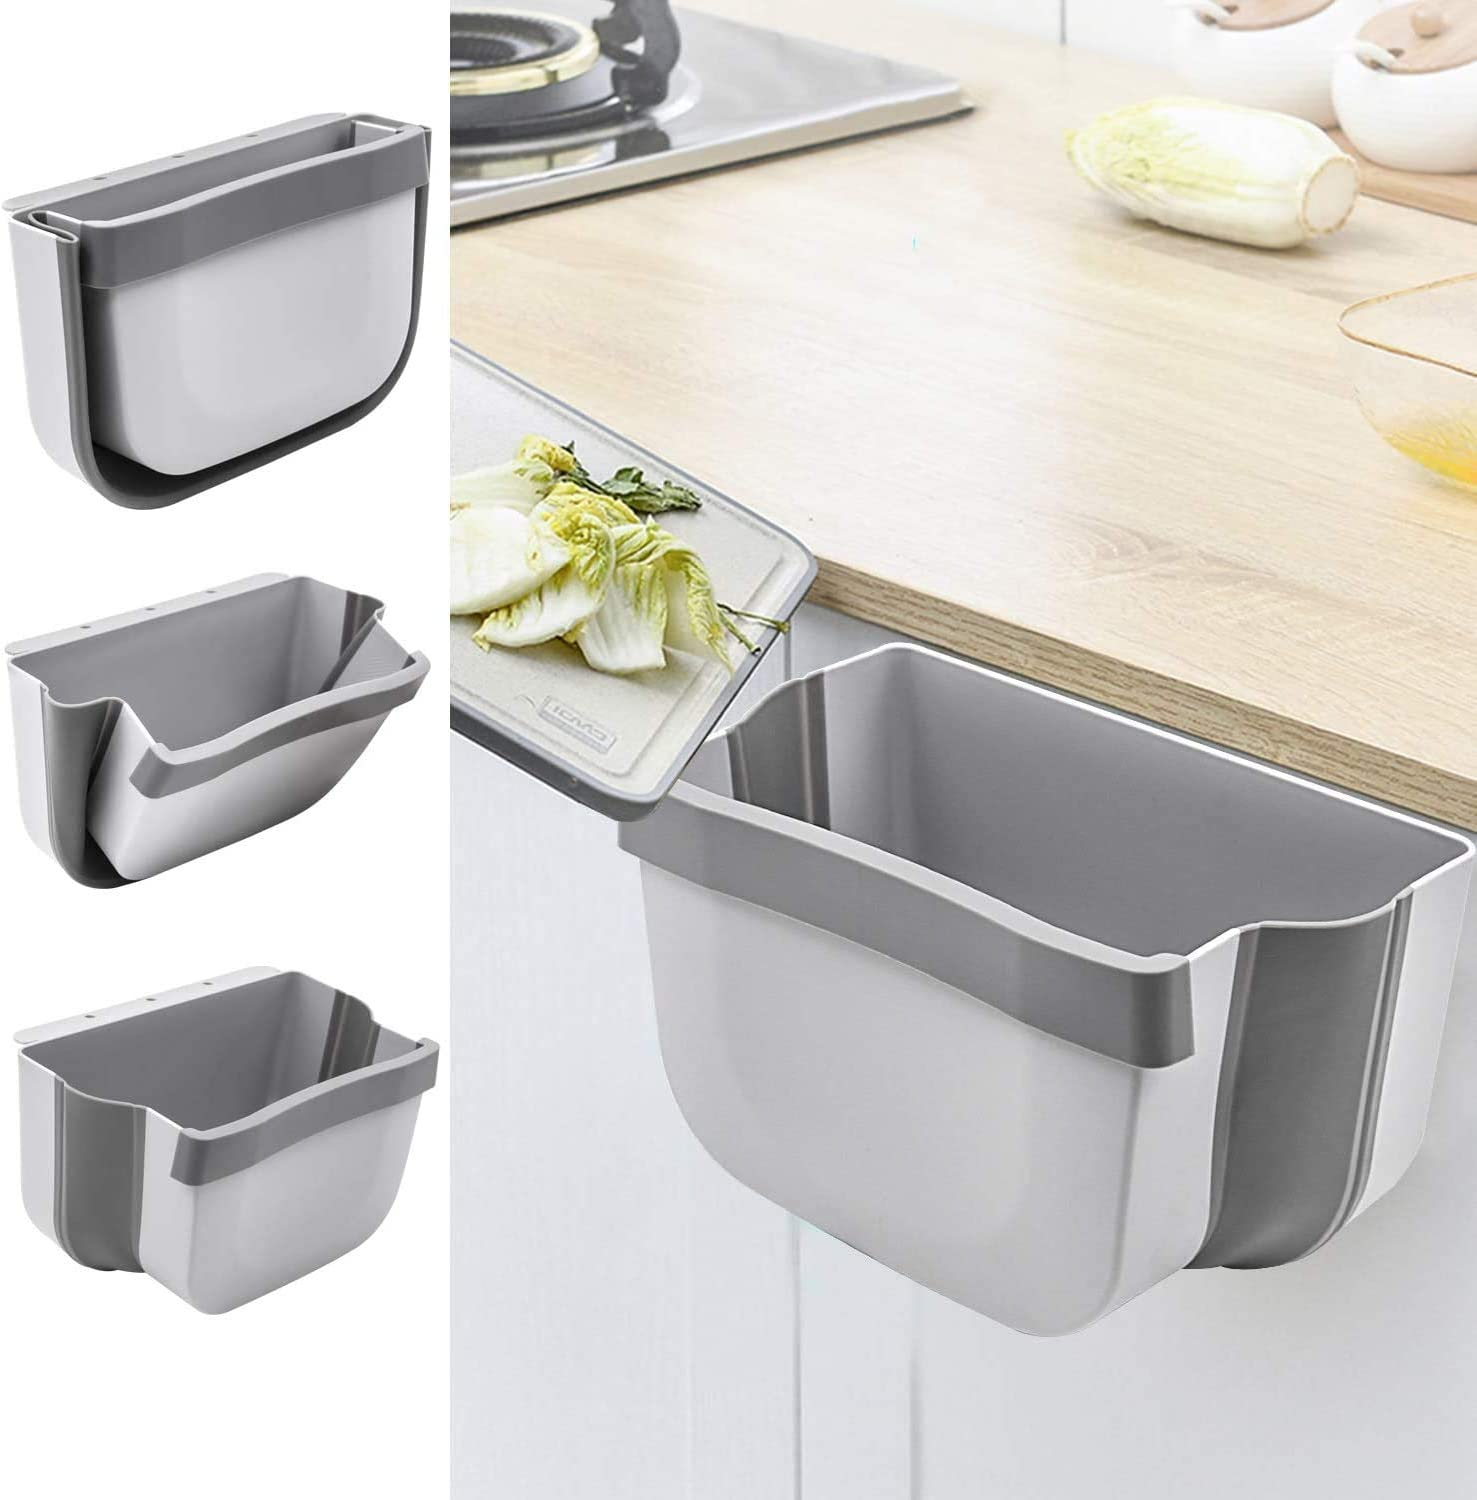 Kitchen Hanging Trash Can, Collapsible Trash Bin Small Compact Garbage Can Attached to Cabinet Door Kitchen Drawer Bedroom Dorm Room Car Waste Bin